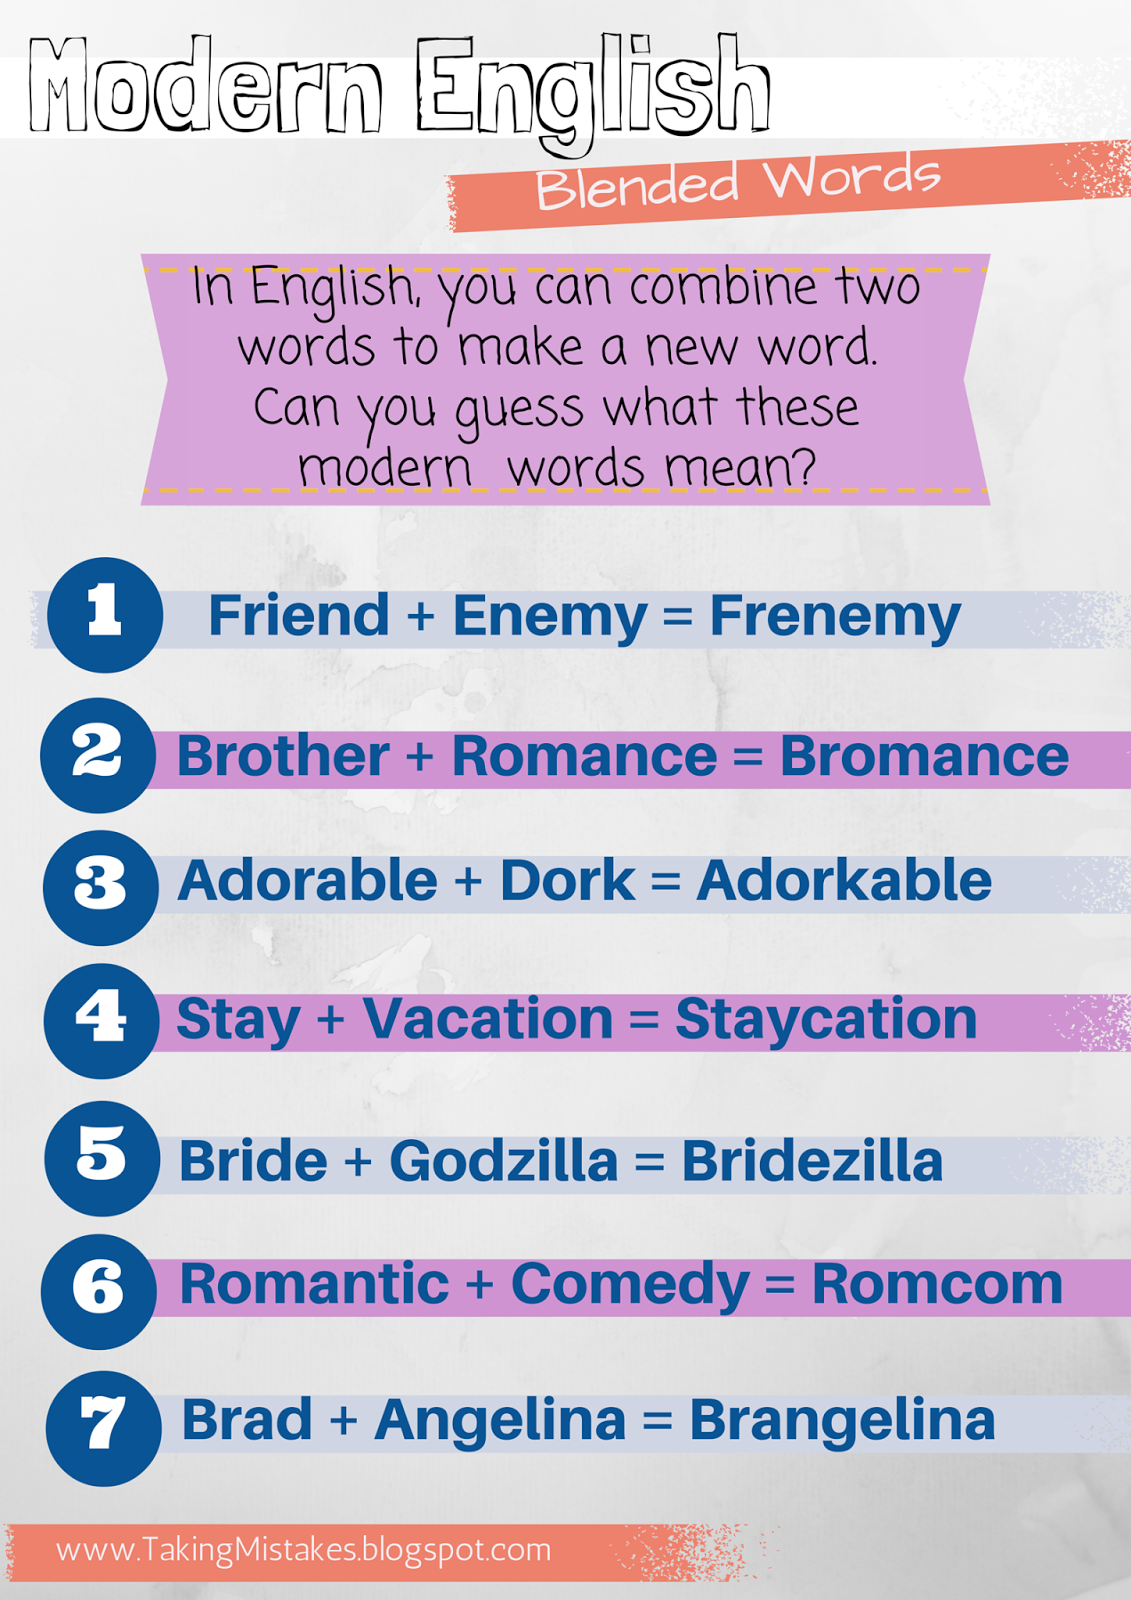 Blended word examples